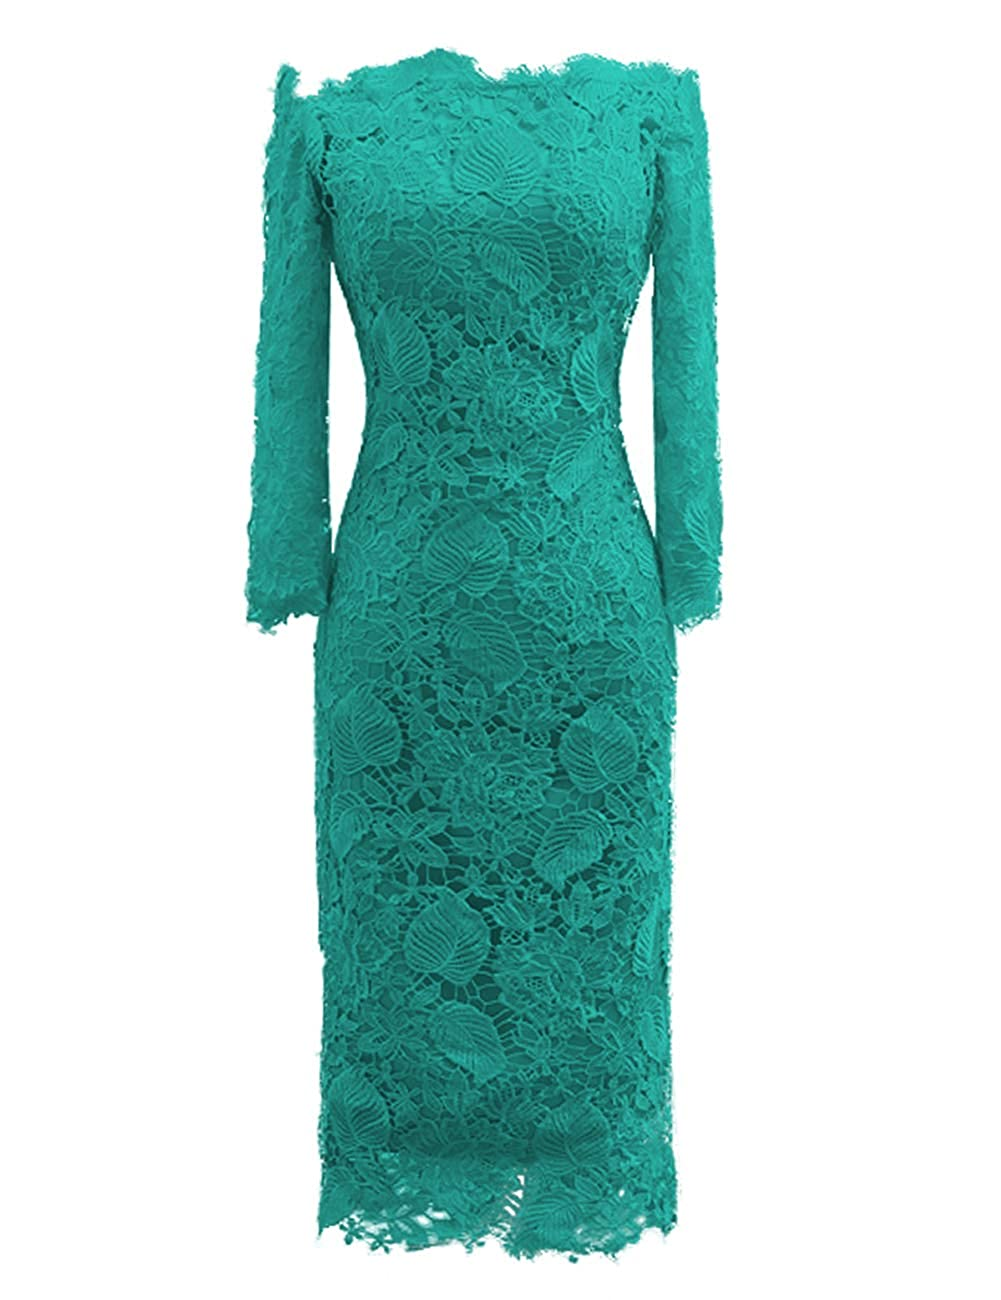 Dark Turquoise JAEDEN Mother of The Bride Dresses with Long Sleeves Lace Formal Evening Gowns Mermaid Evening Dresses Off The Shoulder